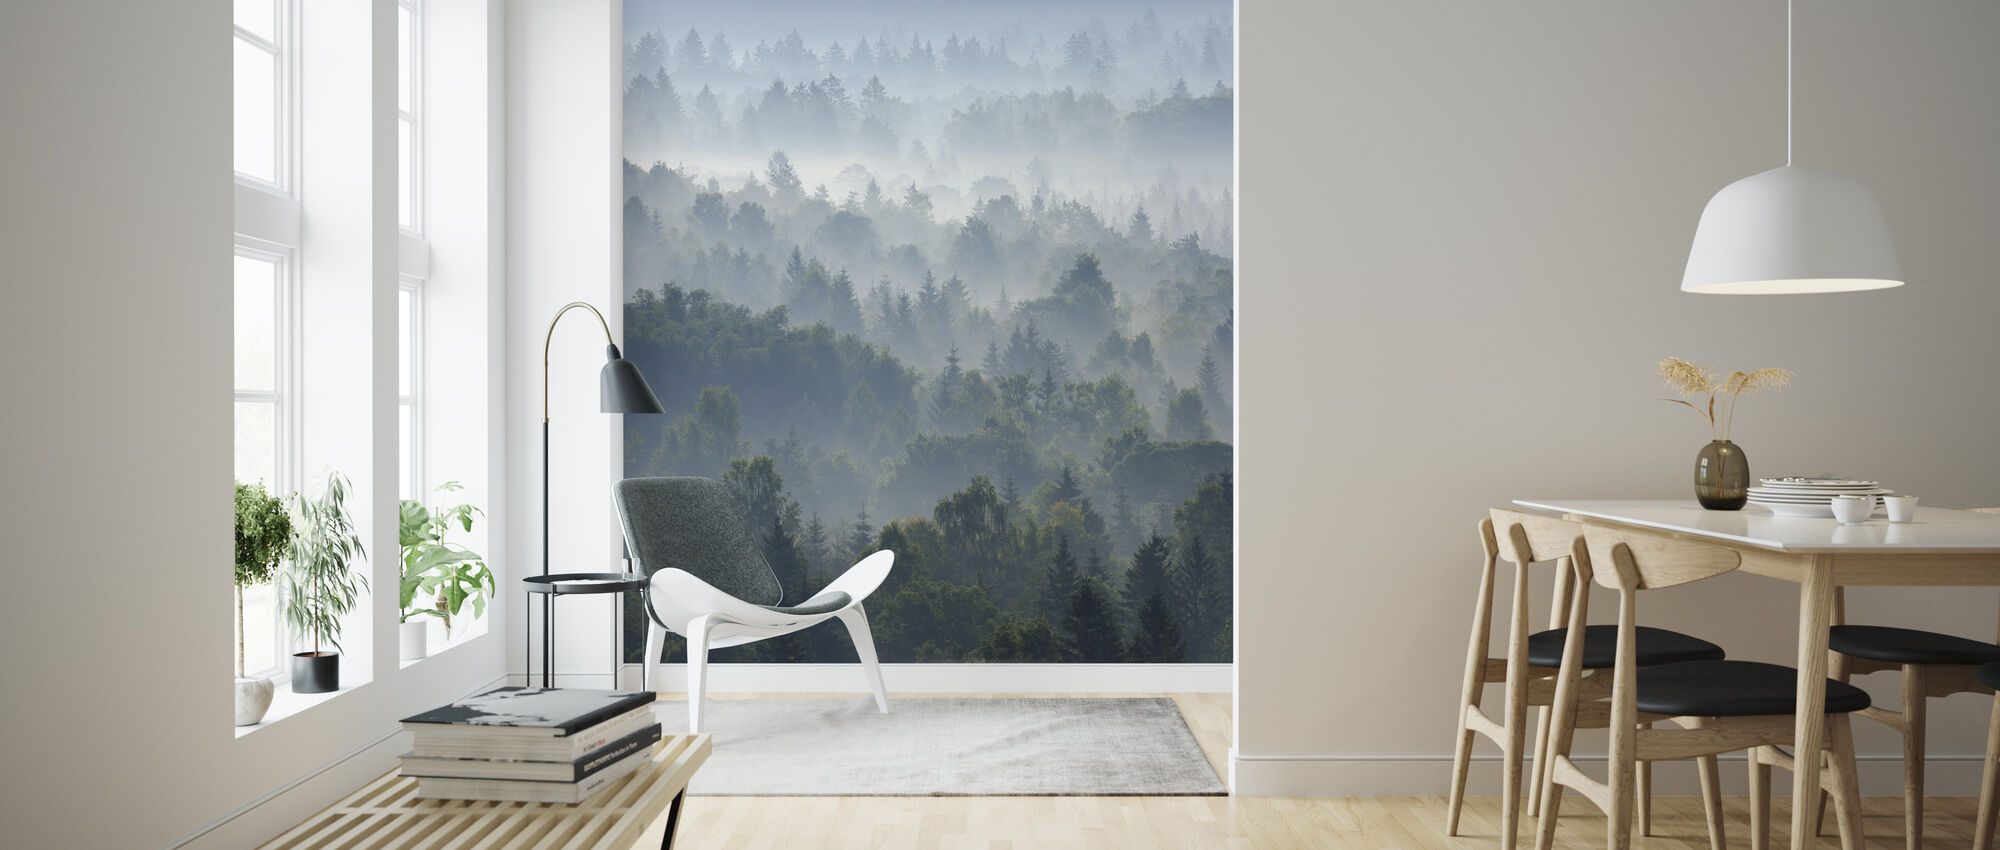 Peaceful Morning - Wallpaper - Living Room